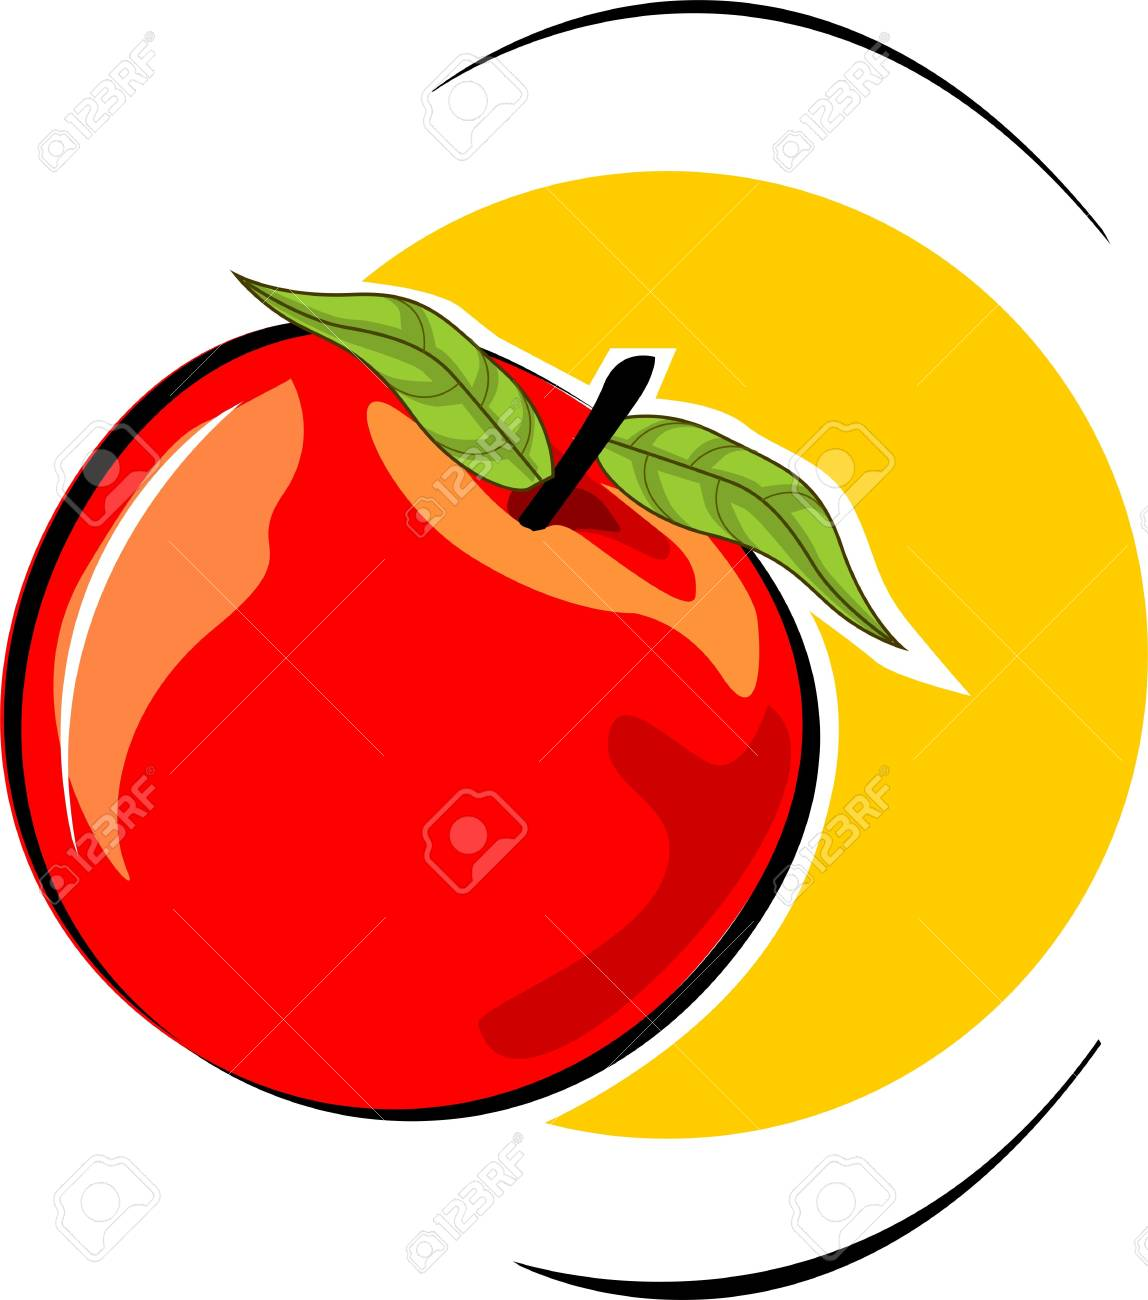 Illustration of a red tomato Stock Illustration - 3820877